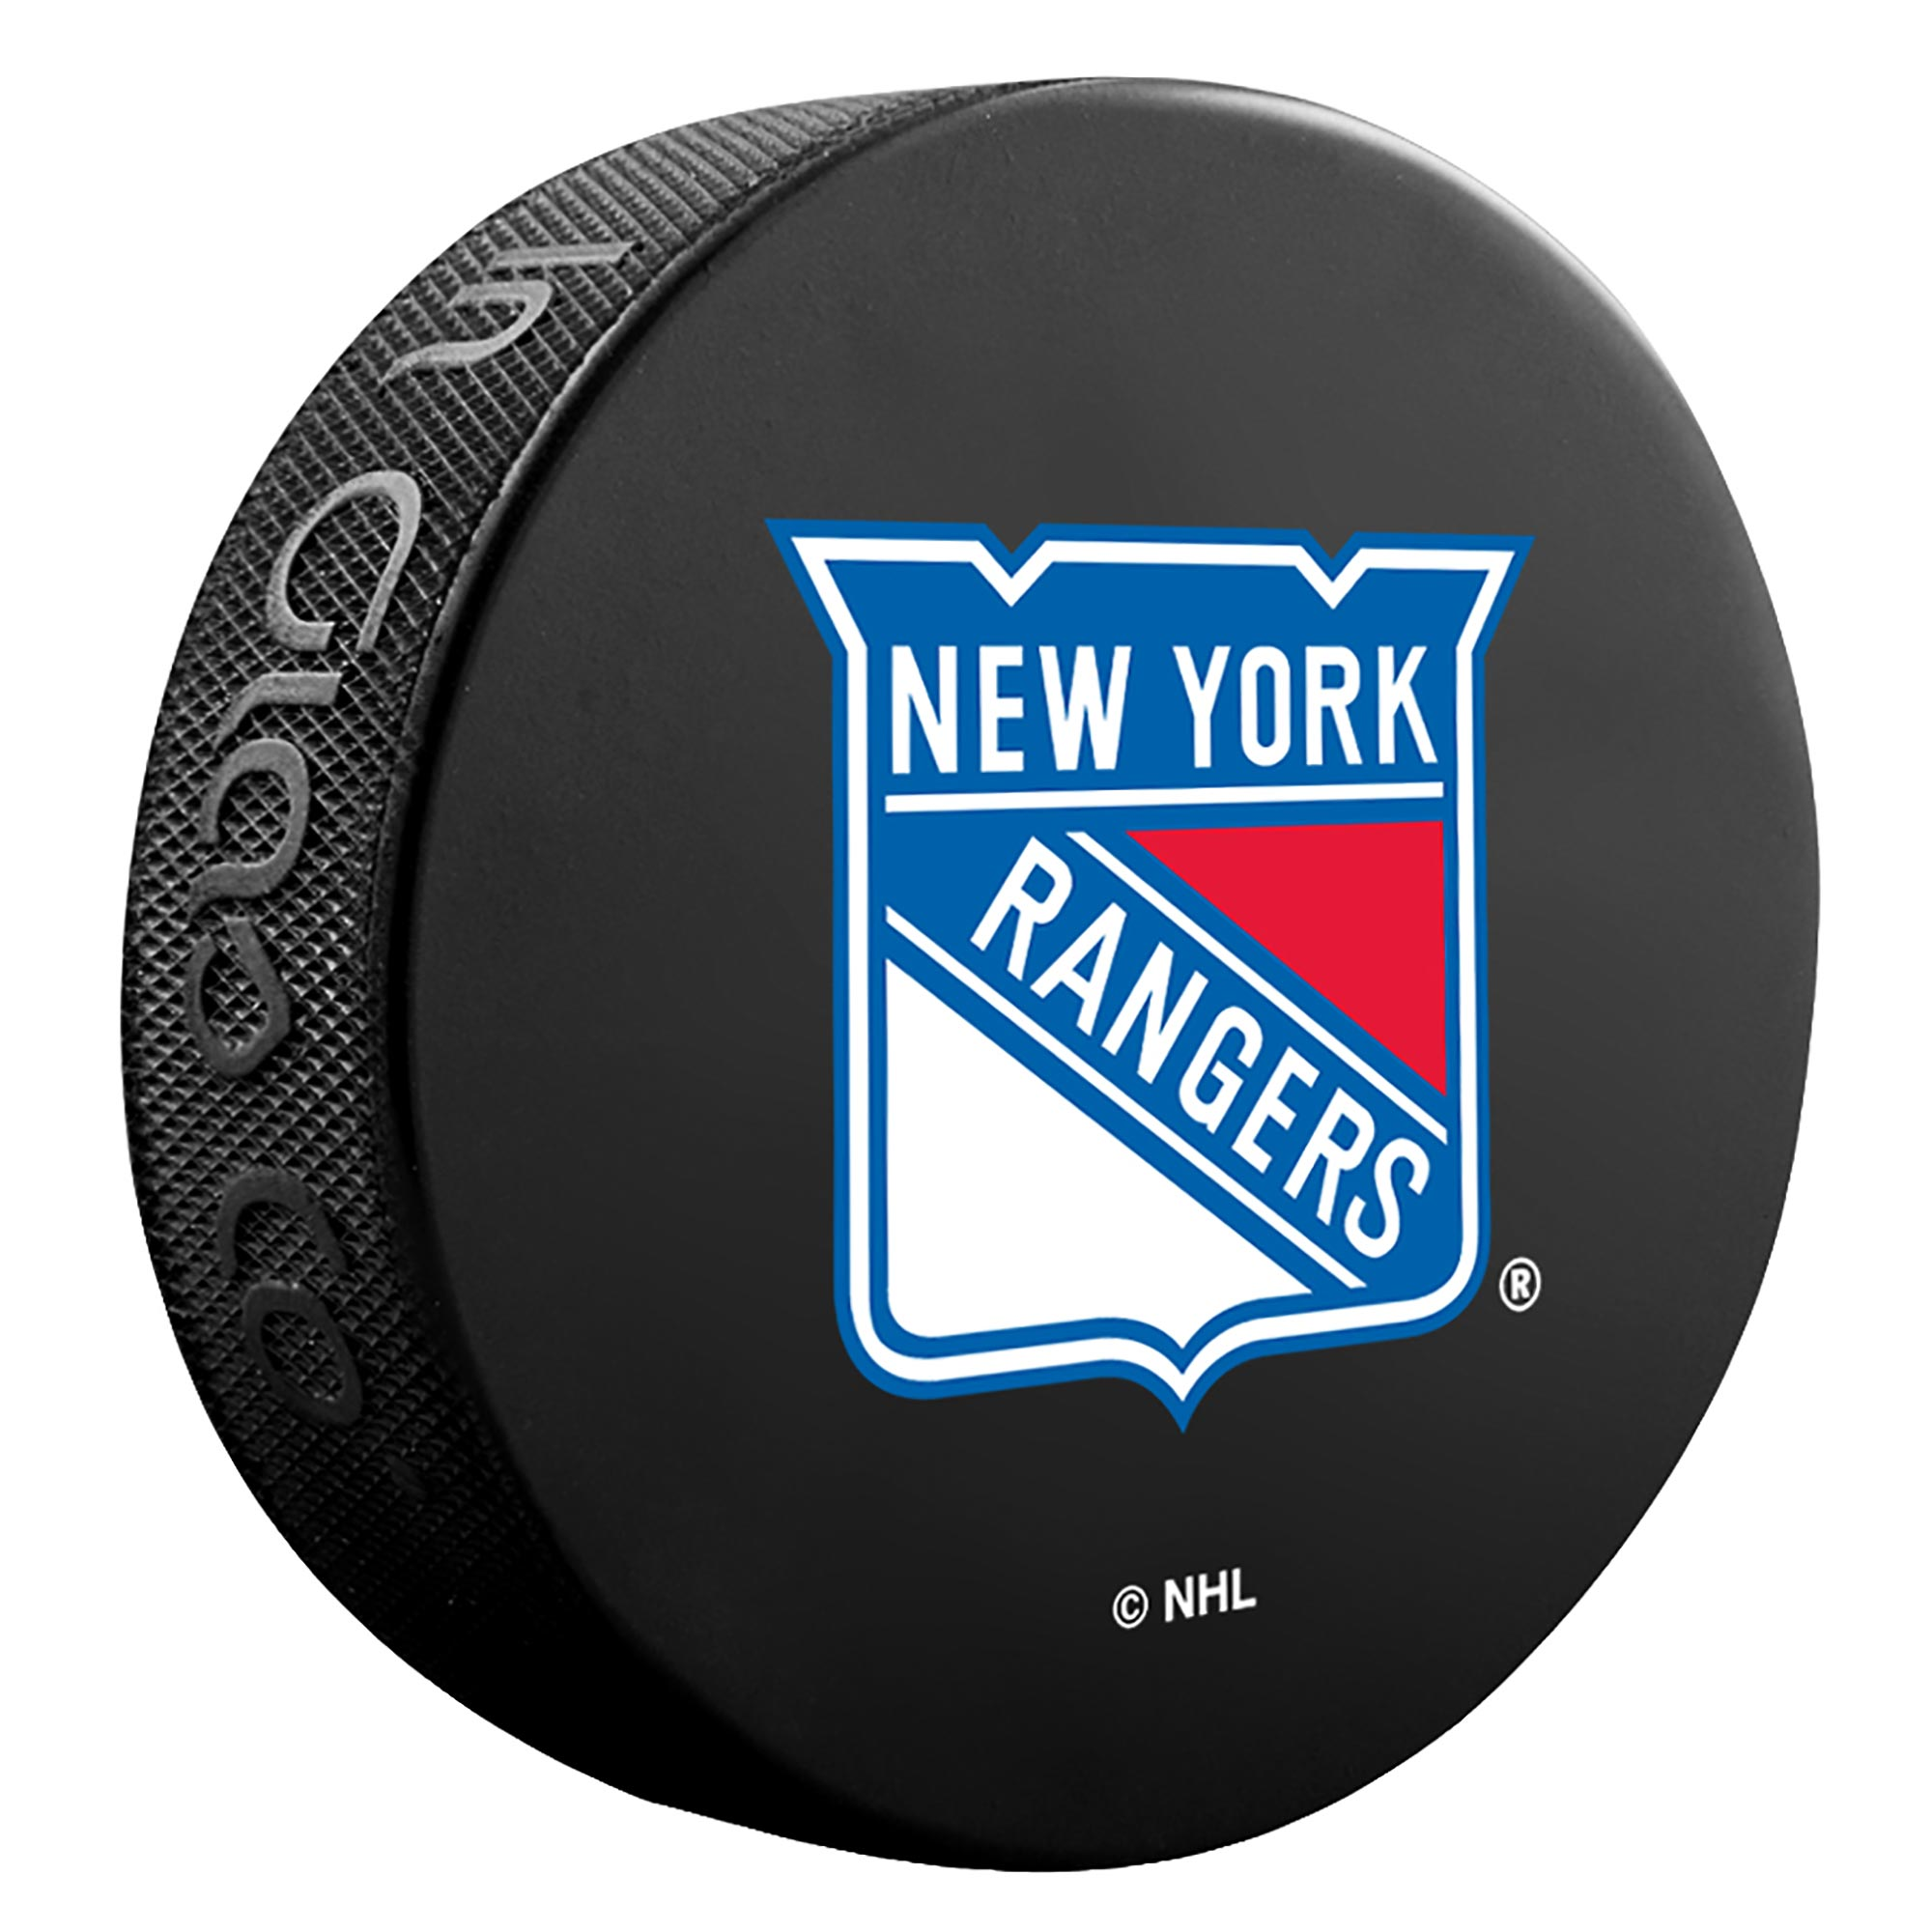 New York Rangers Team Puck